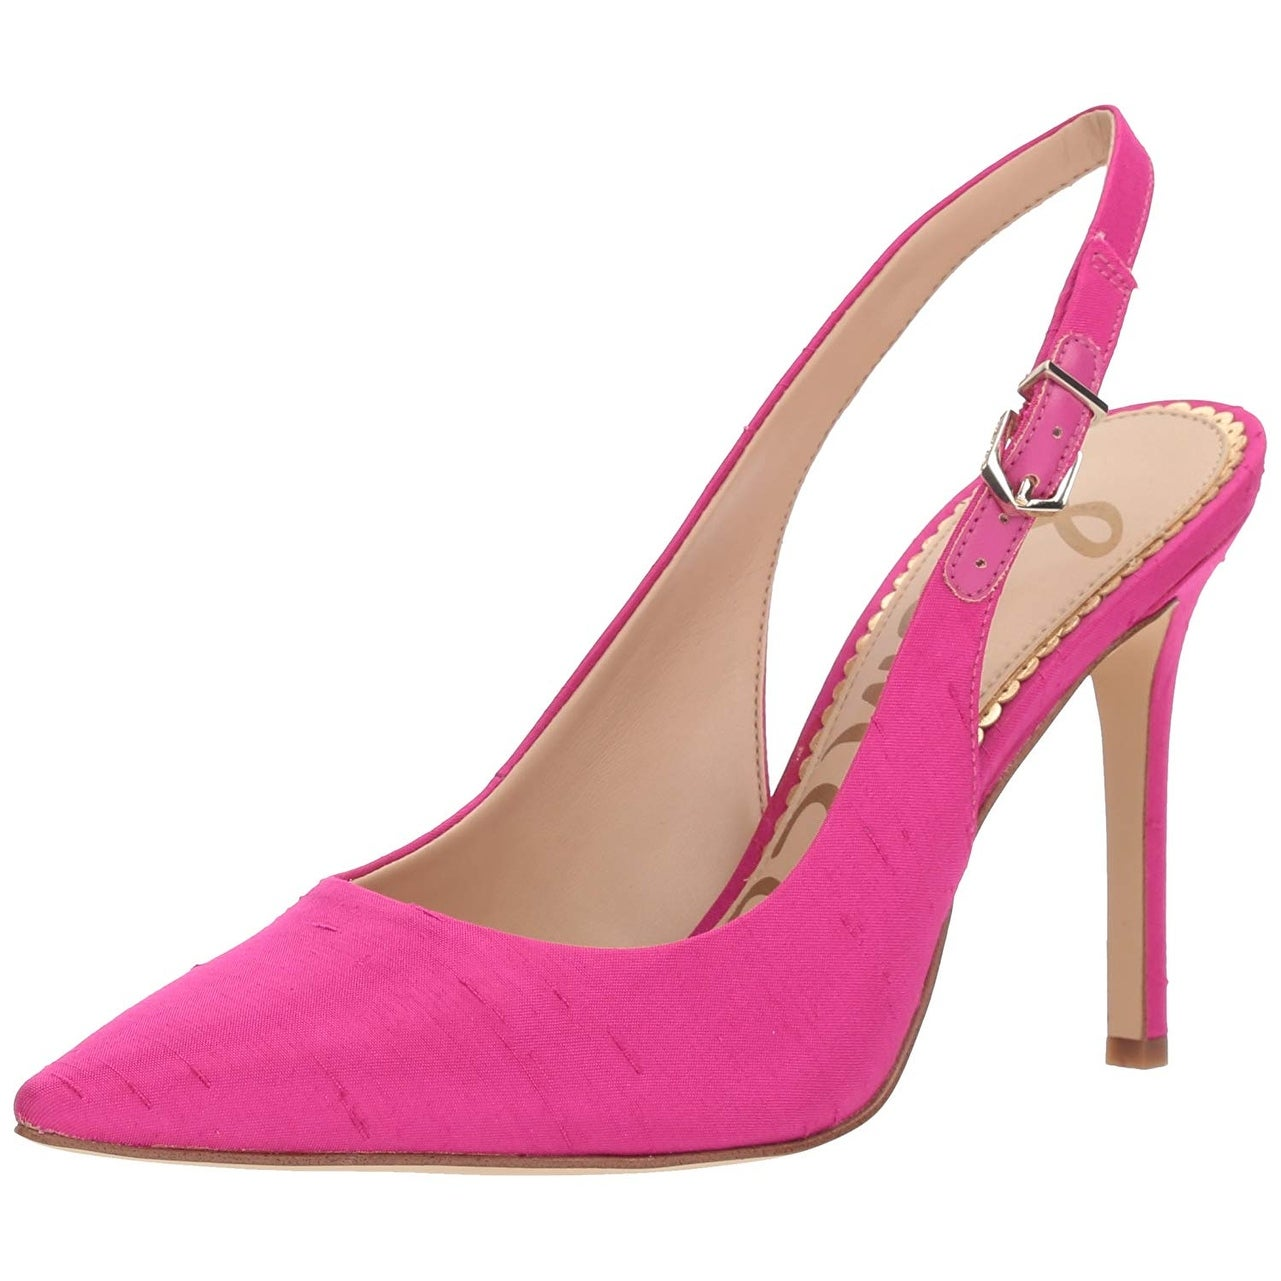 0084936b6b53 Shop Sam Edelman Womens hastings Fabric Pointed Toe SlingBack Classic Pumps  - 5.5 - Free Shipping Today - Overstock - 22882607